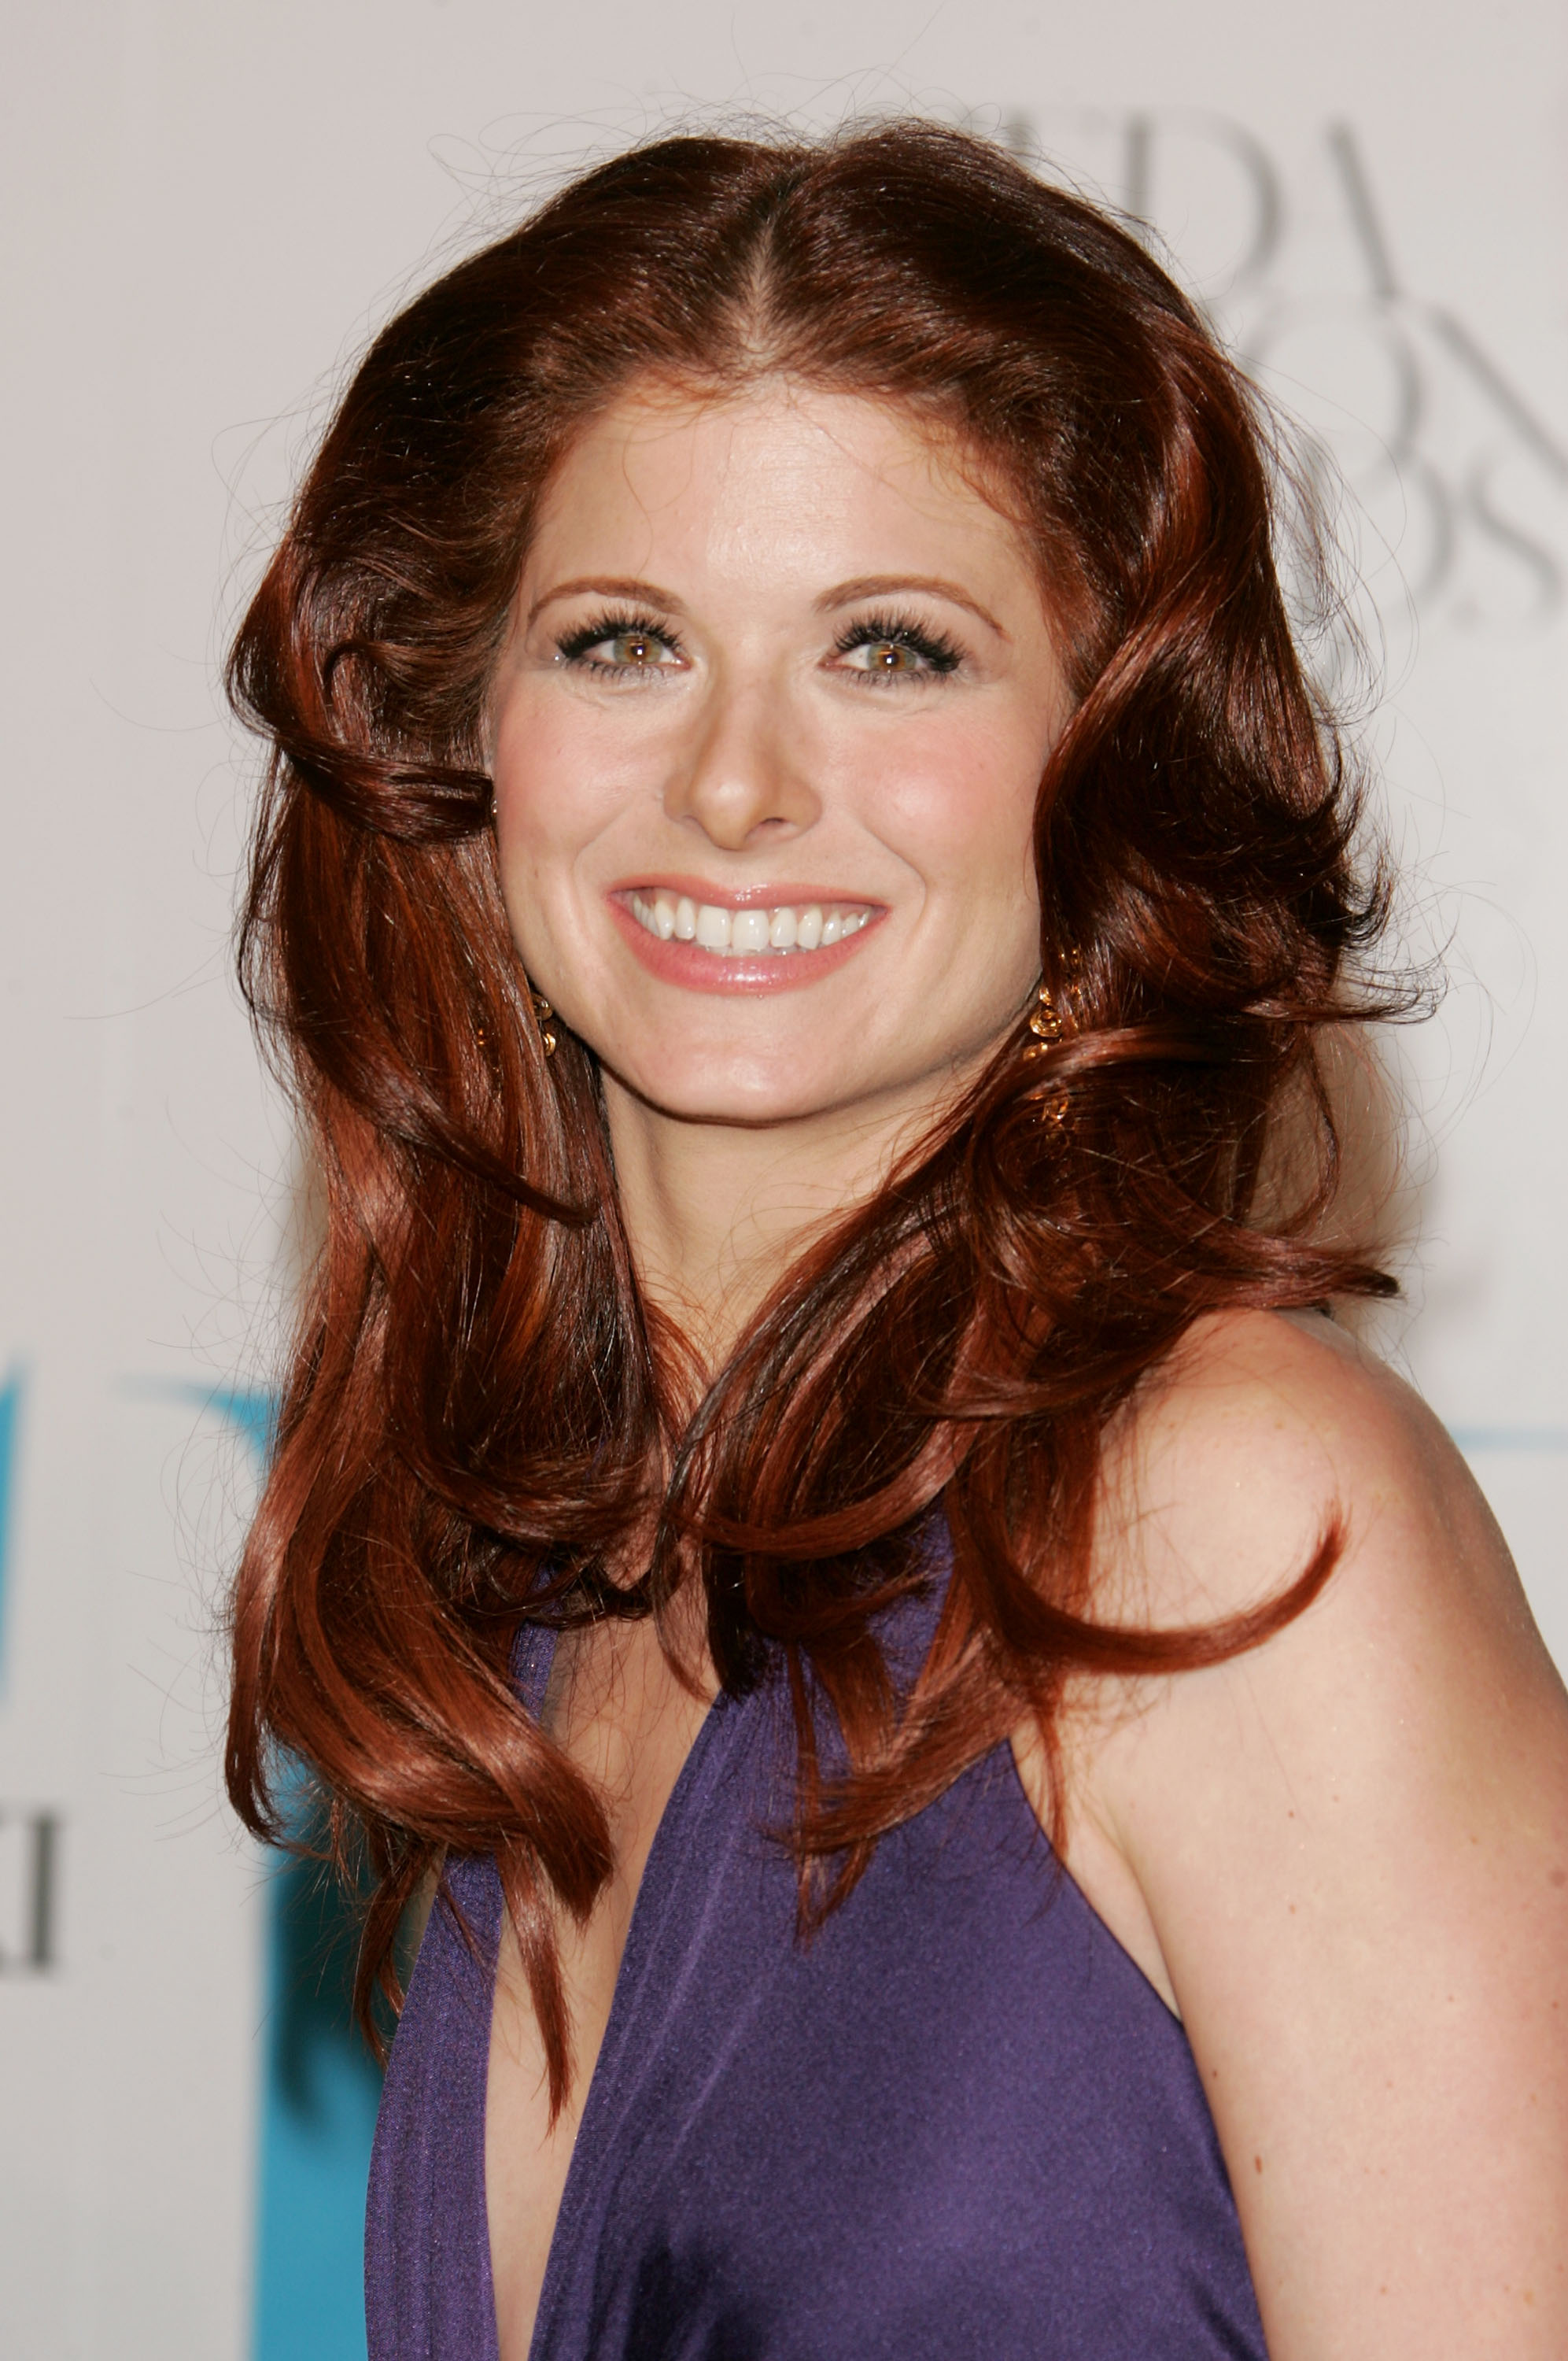 04479_Debra_Messing_01_122_451lo.jpg